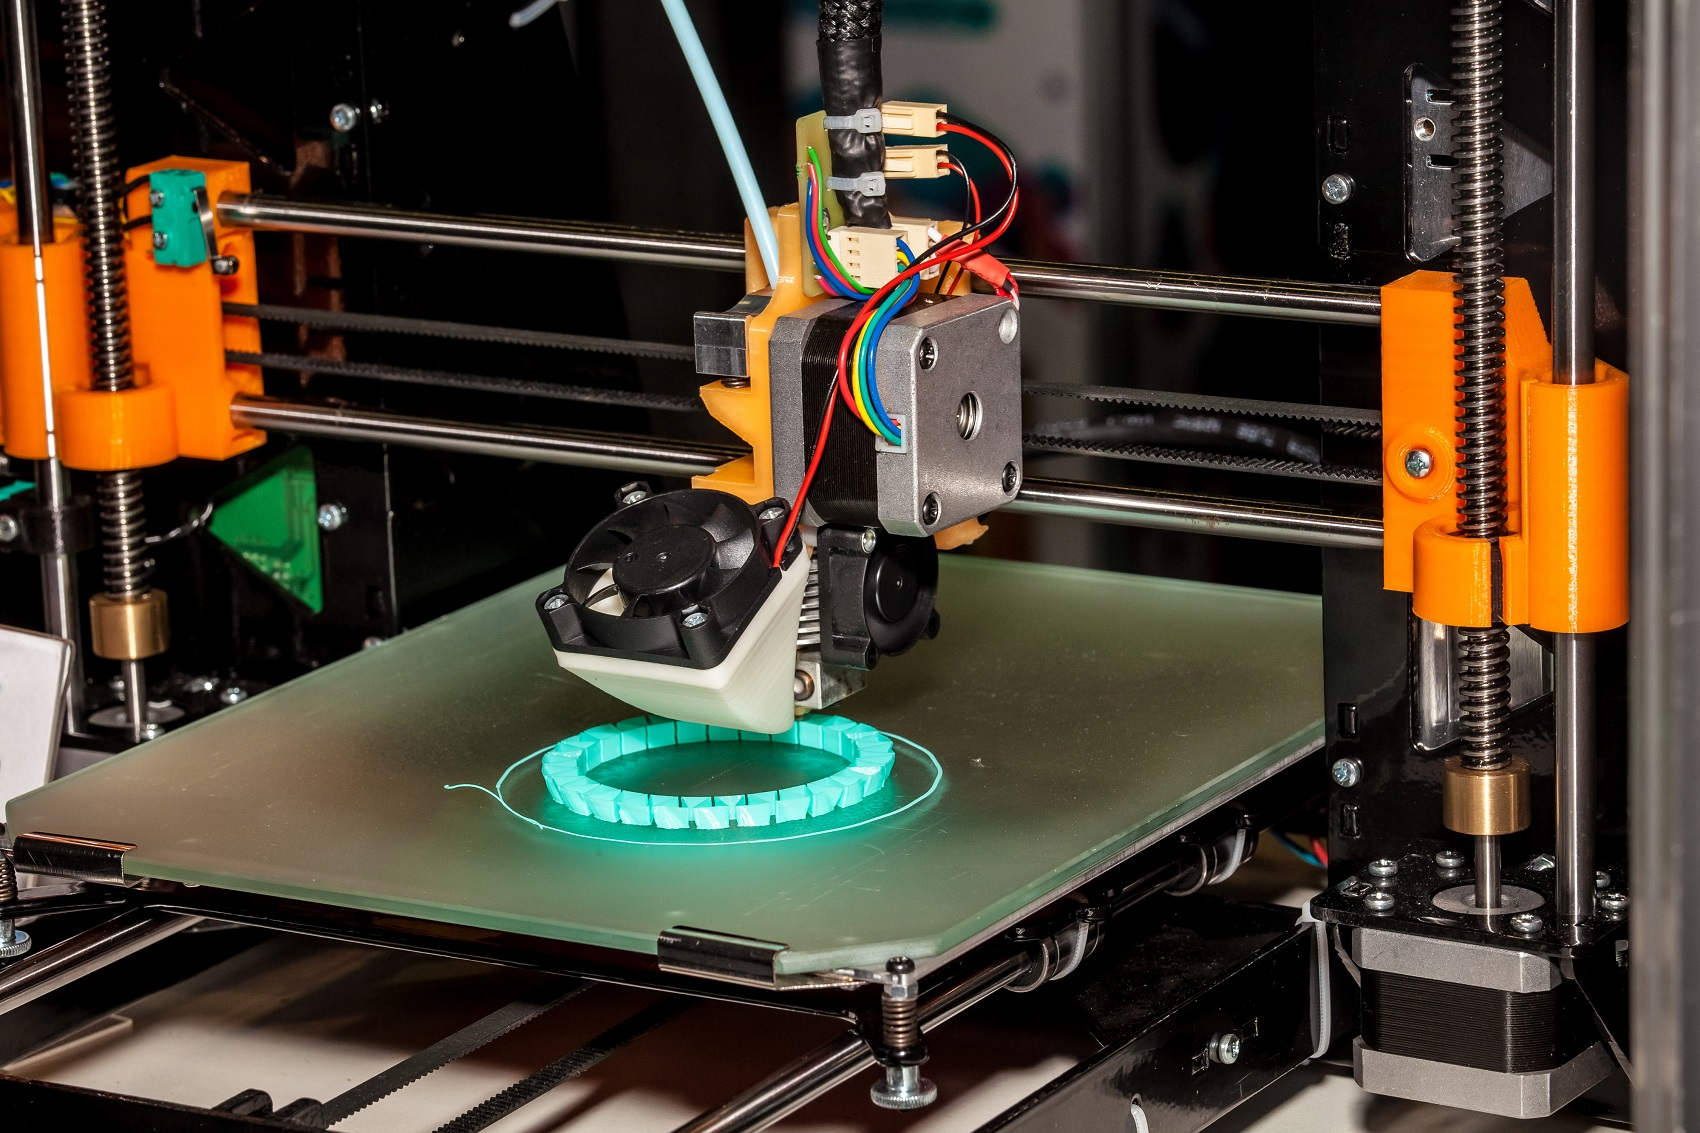 What Does The Future Hold For 3D Printing? TechNative